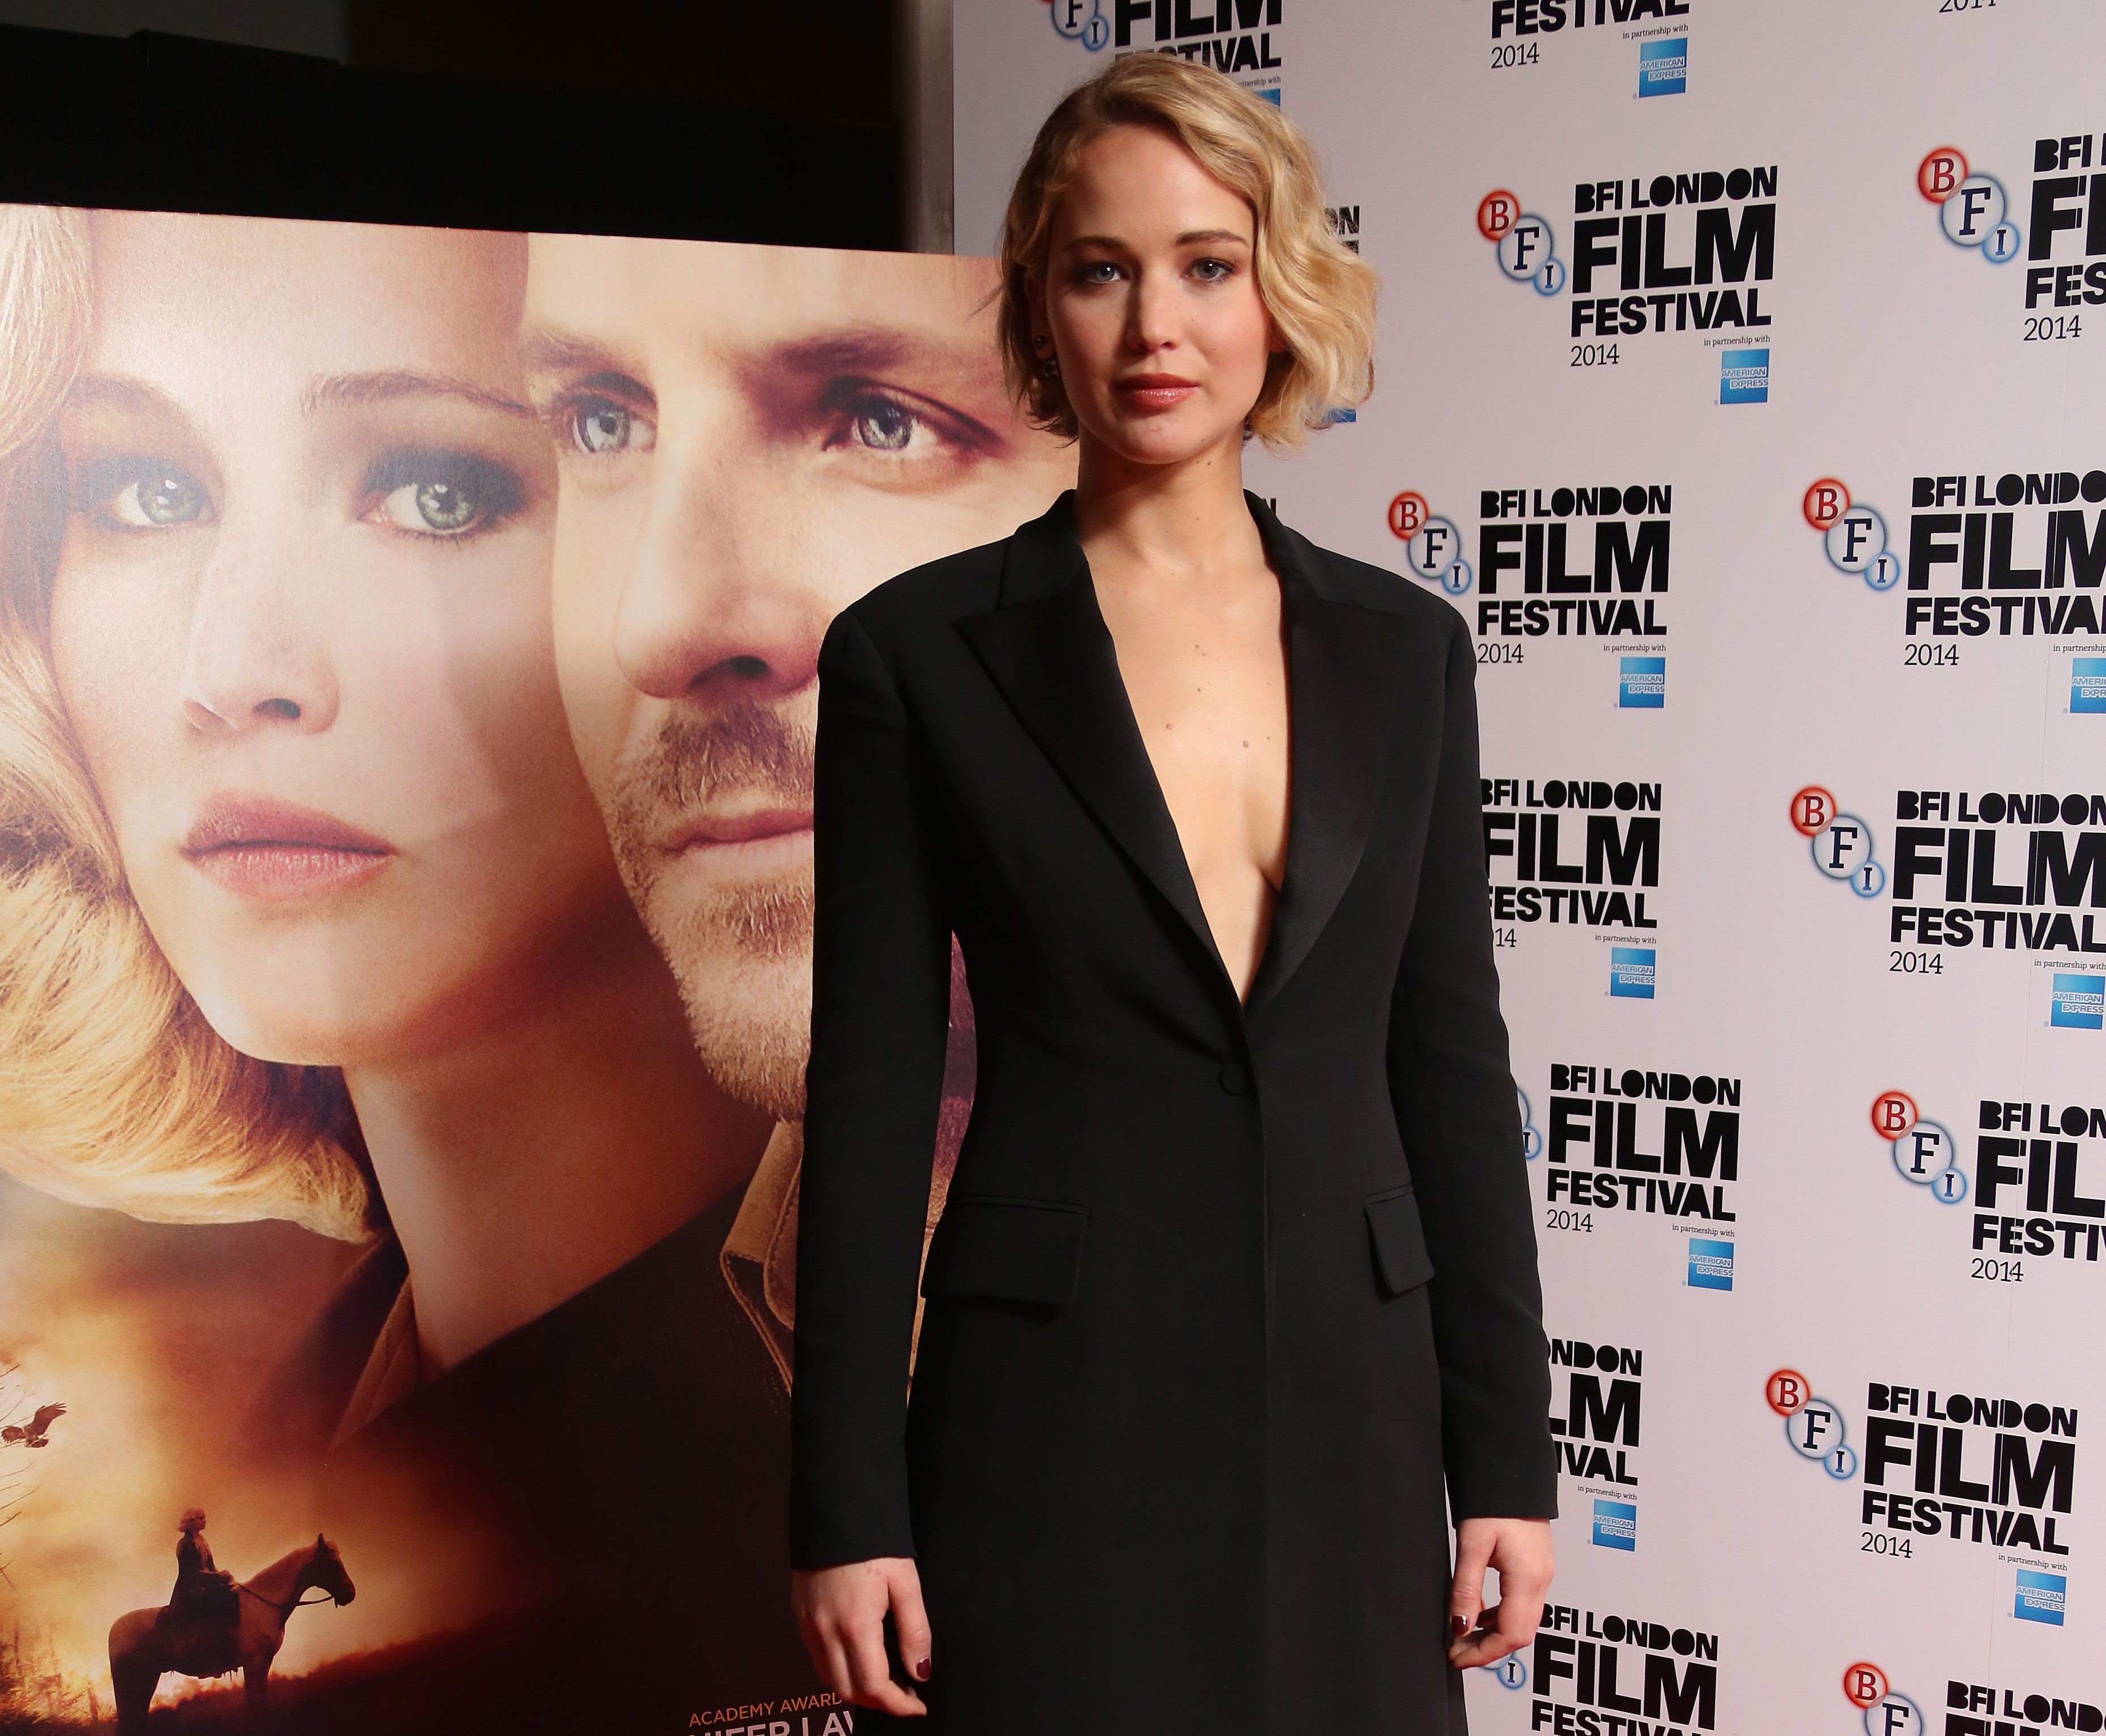 Actress Jennifer Lawrence poses for photographs during the photo call for the film Serena, as part of London Film Festival, at the Vue cinema in central London, Monday, Oct. 13, 2014. (Photo by Joel Ryan/Invision/AP)